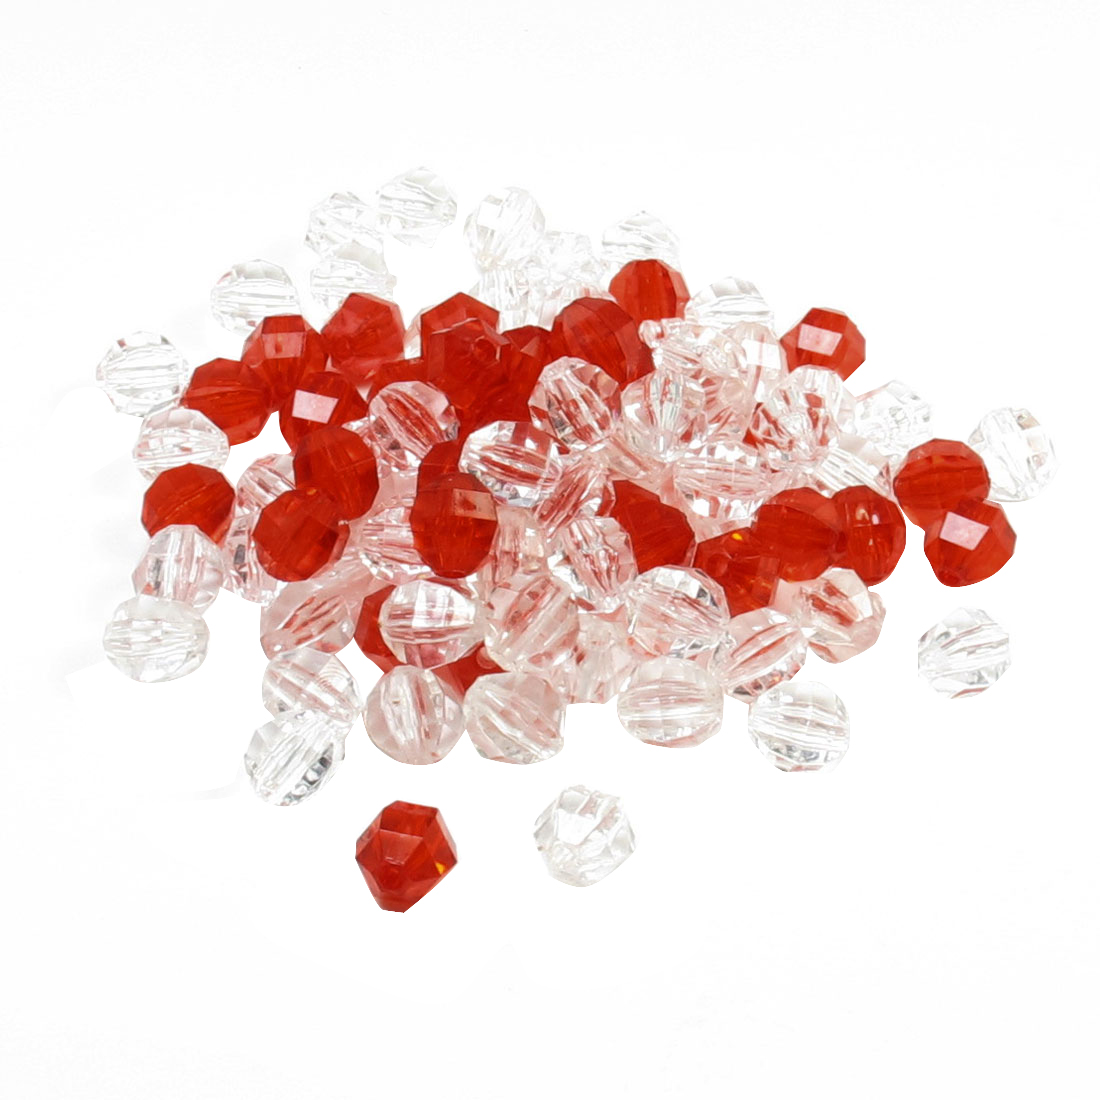 Bracelets Necklace Red Clear Plastic DIY Angular Beads 190 Pcs